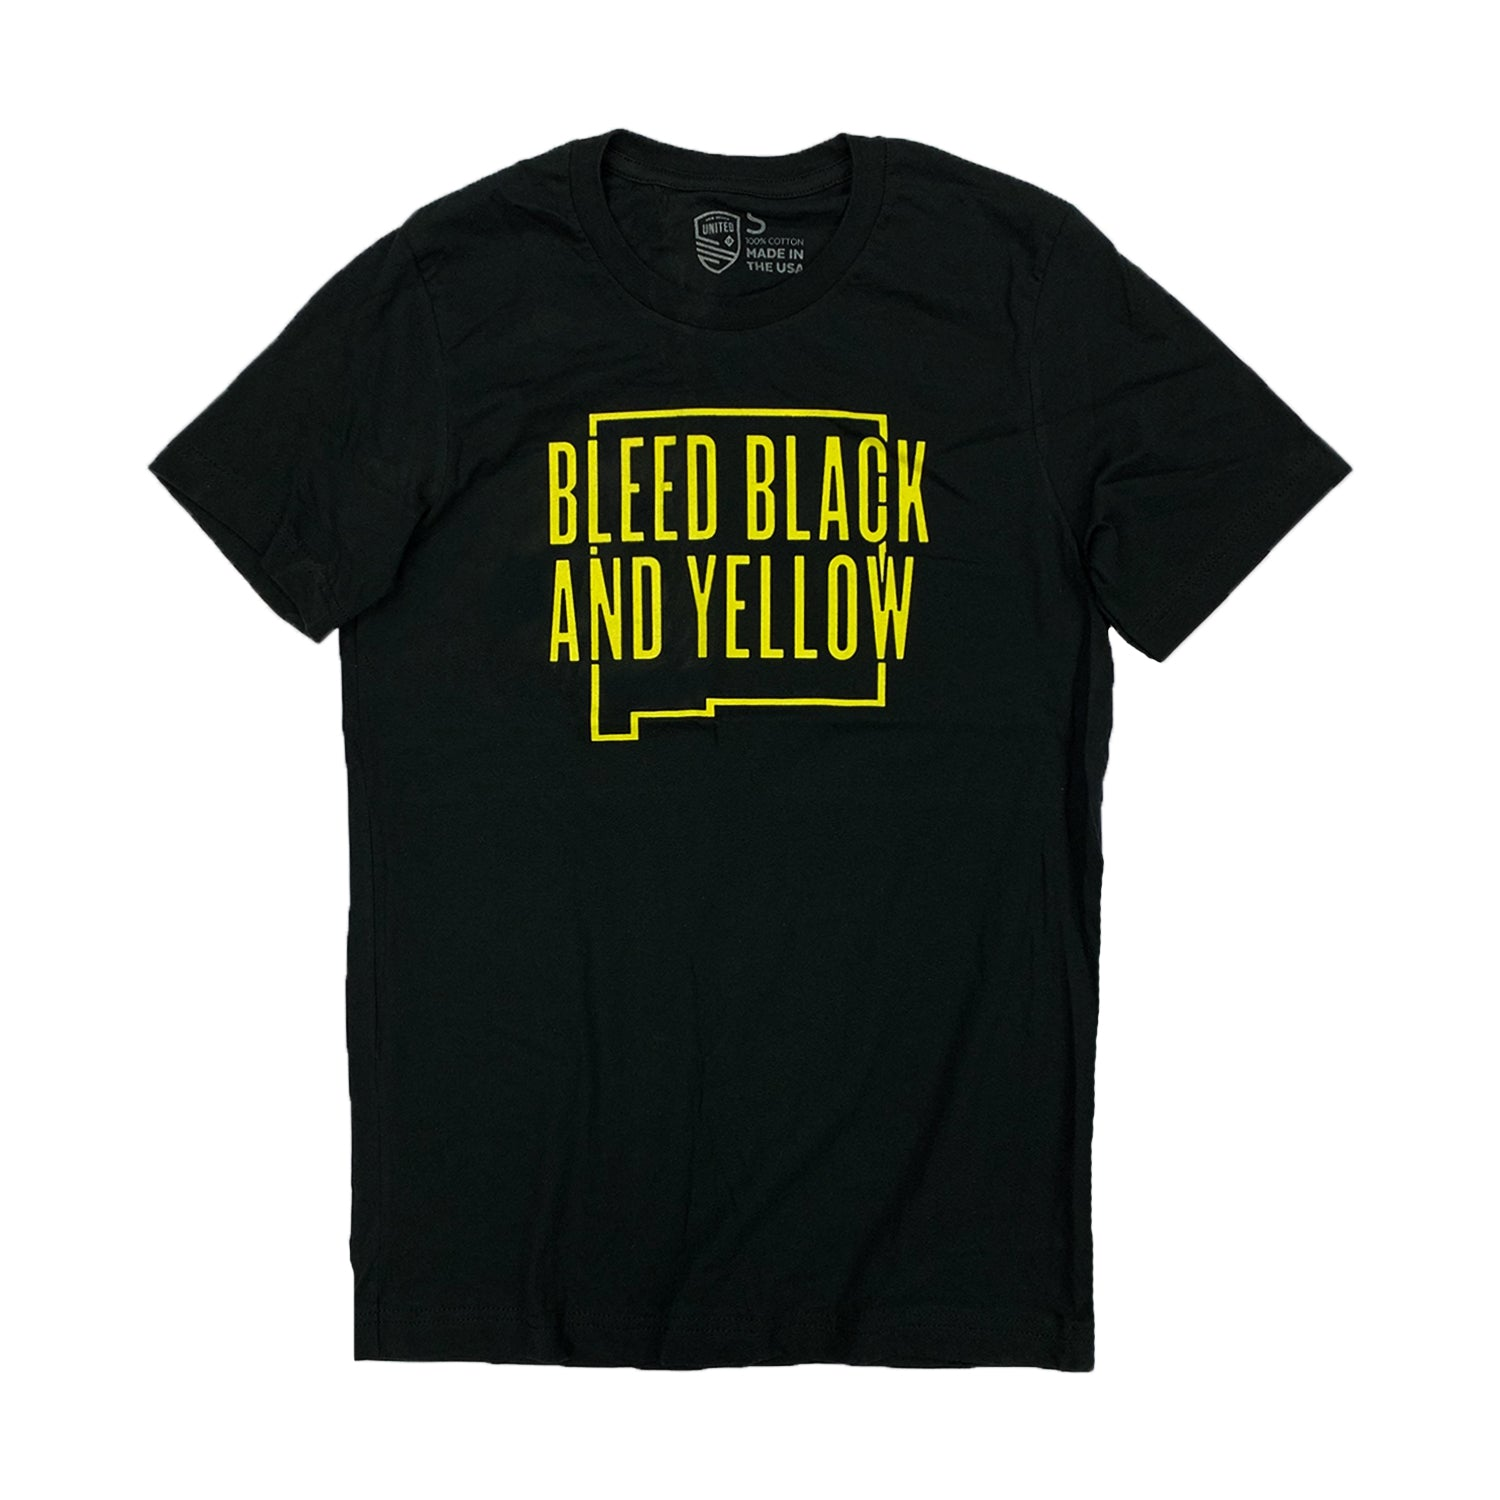 New Mexico United Bleed Black and Yellow Unisex Tee